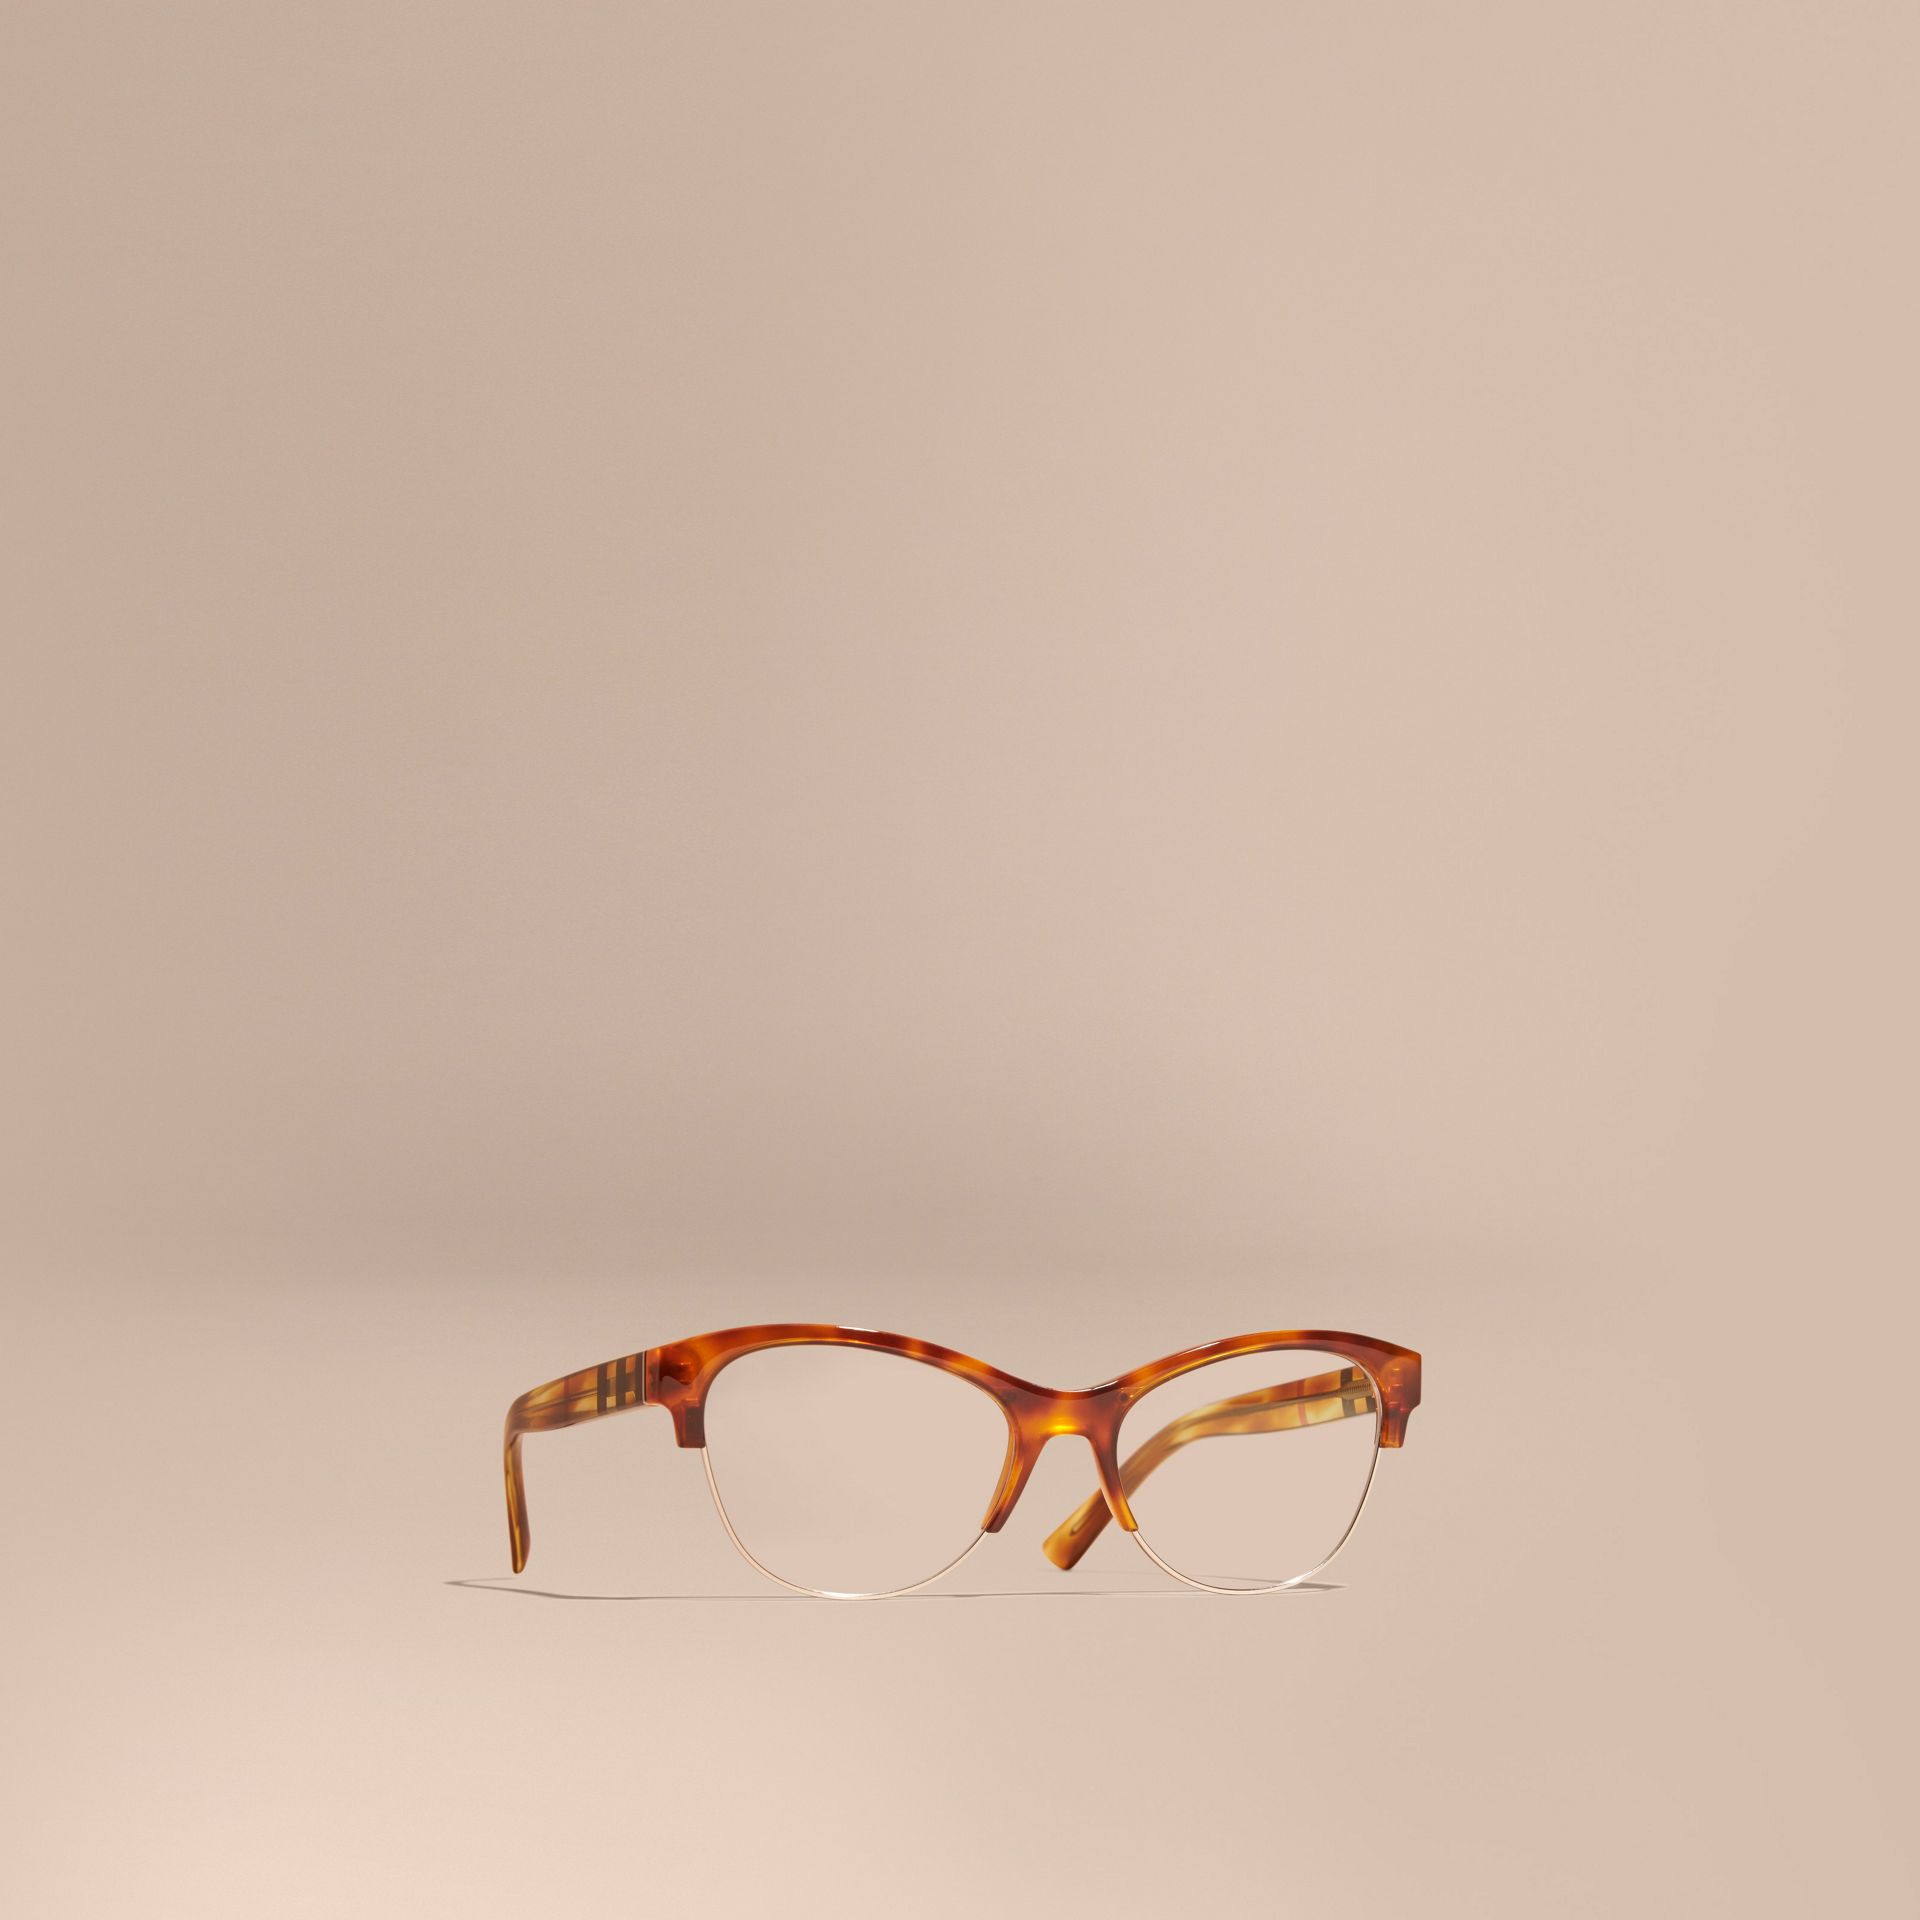 Half-rimmed Cat-eye Optical Frames in Light Russet Brown - gallery image 1